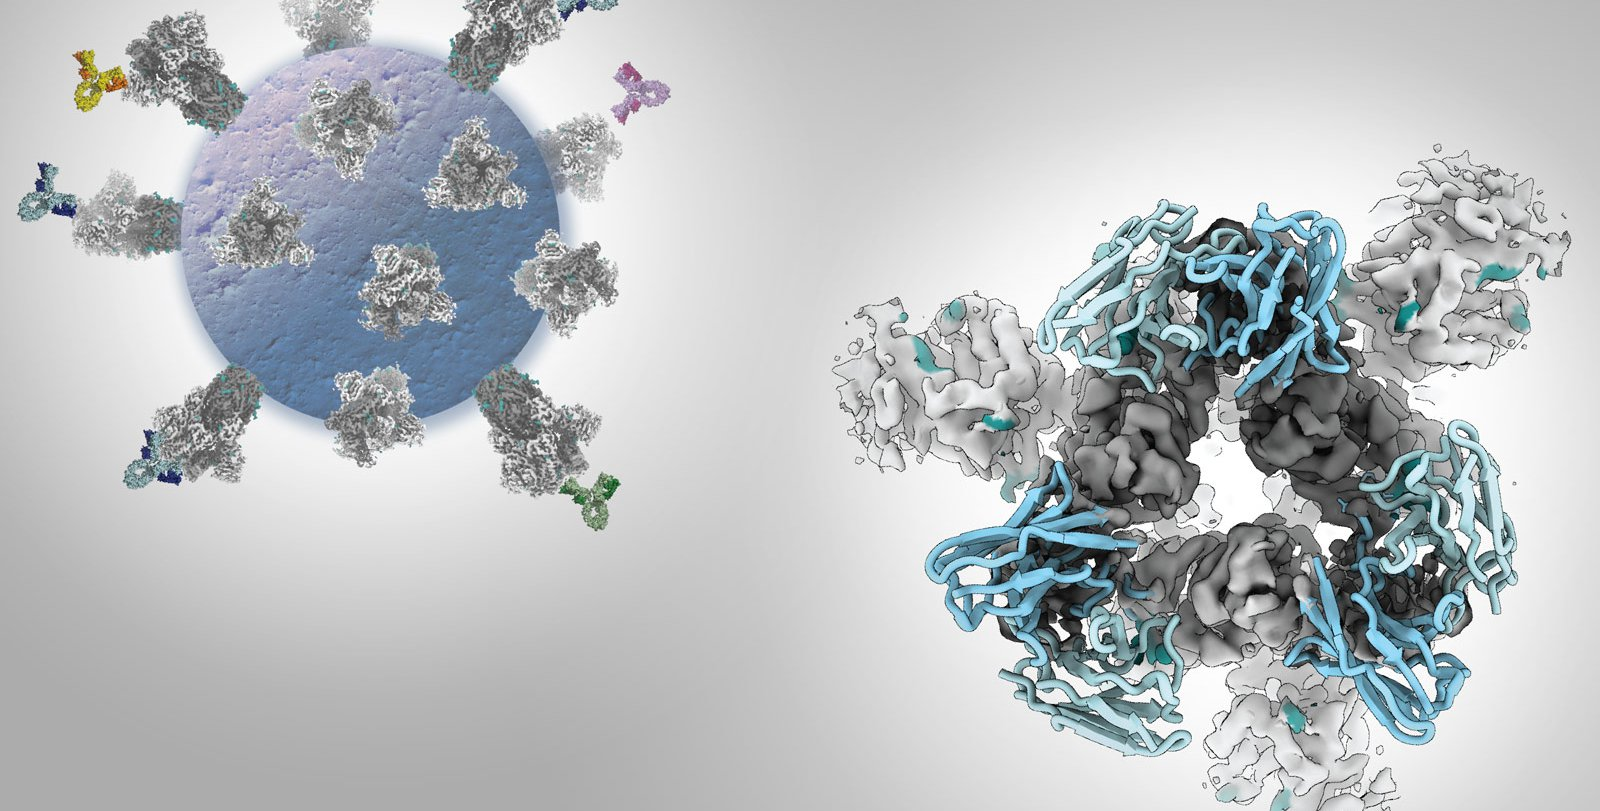 An illustration of a SARS-CoV-2 virus with antibodies attached to its spikes, and a close-up microscopy image of an antibody bound to the receptor binding domain